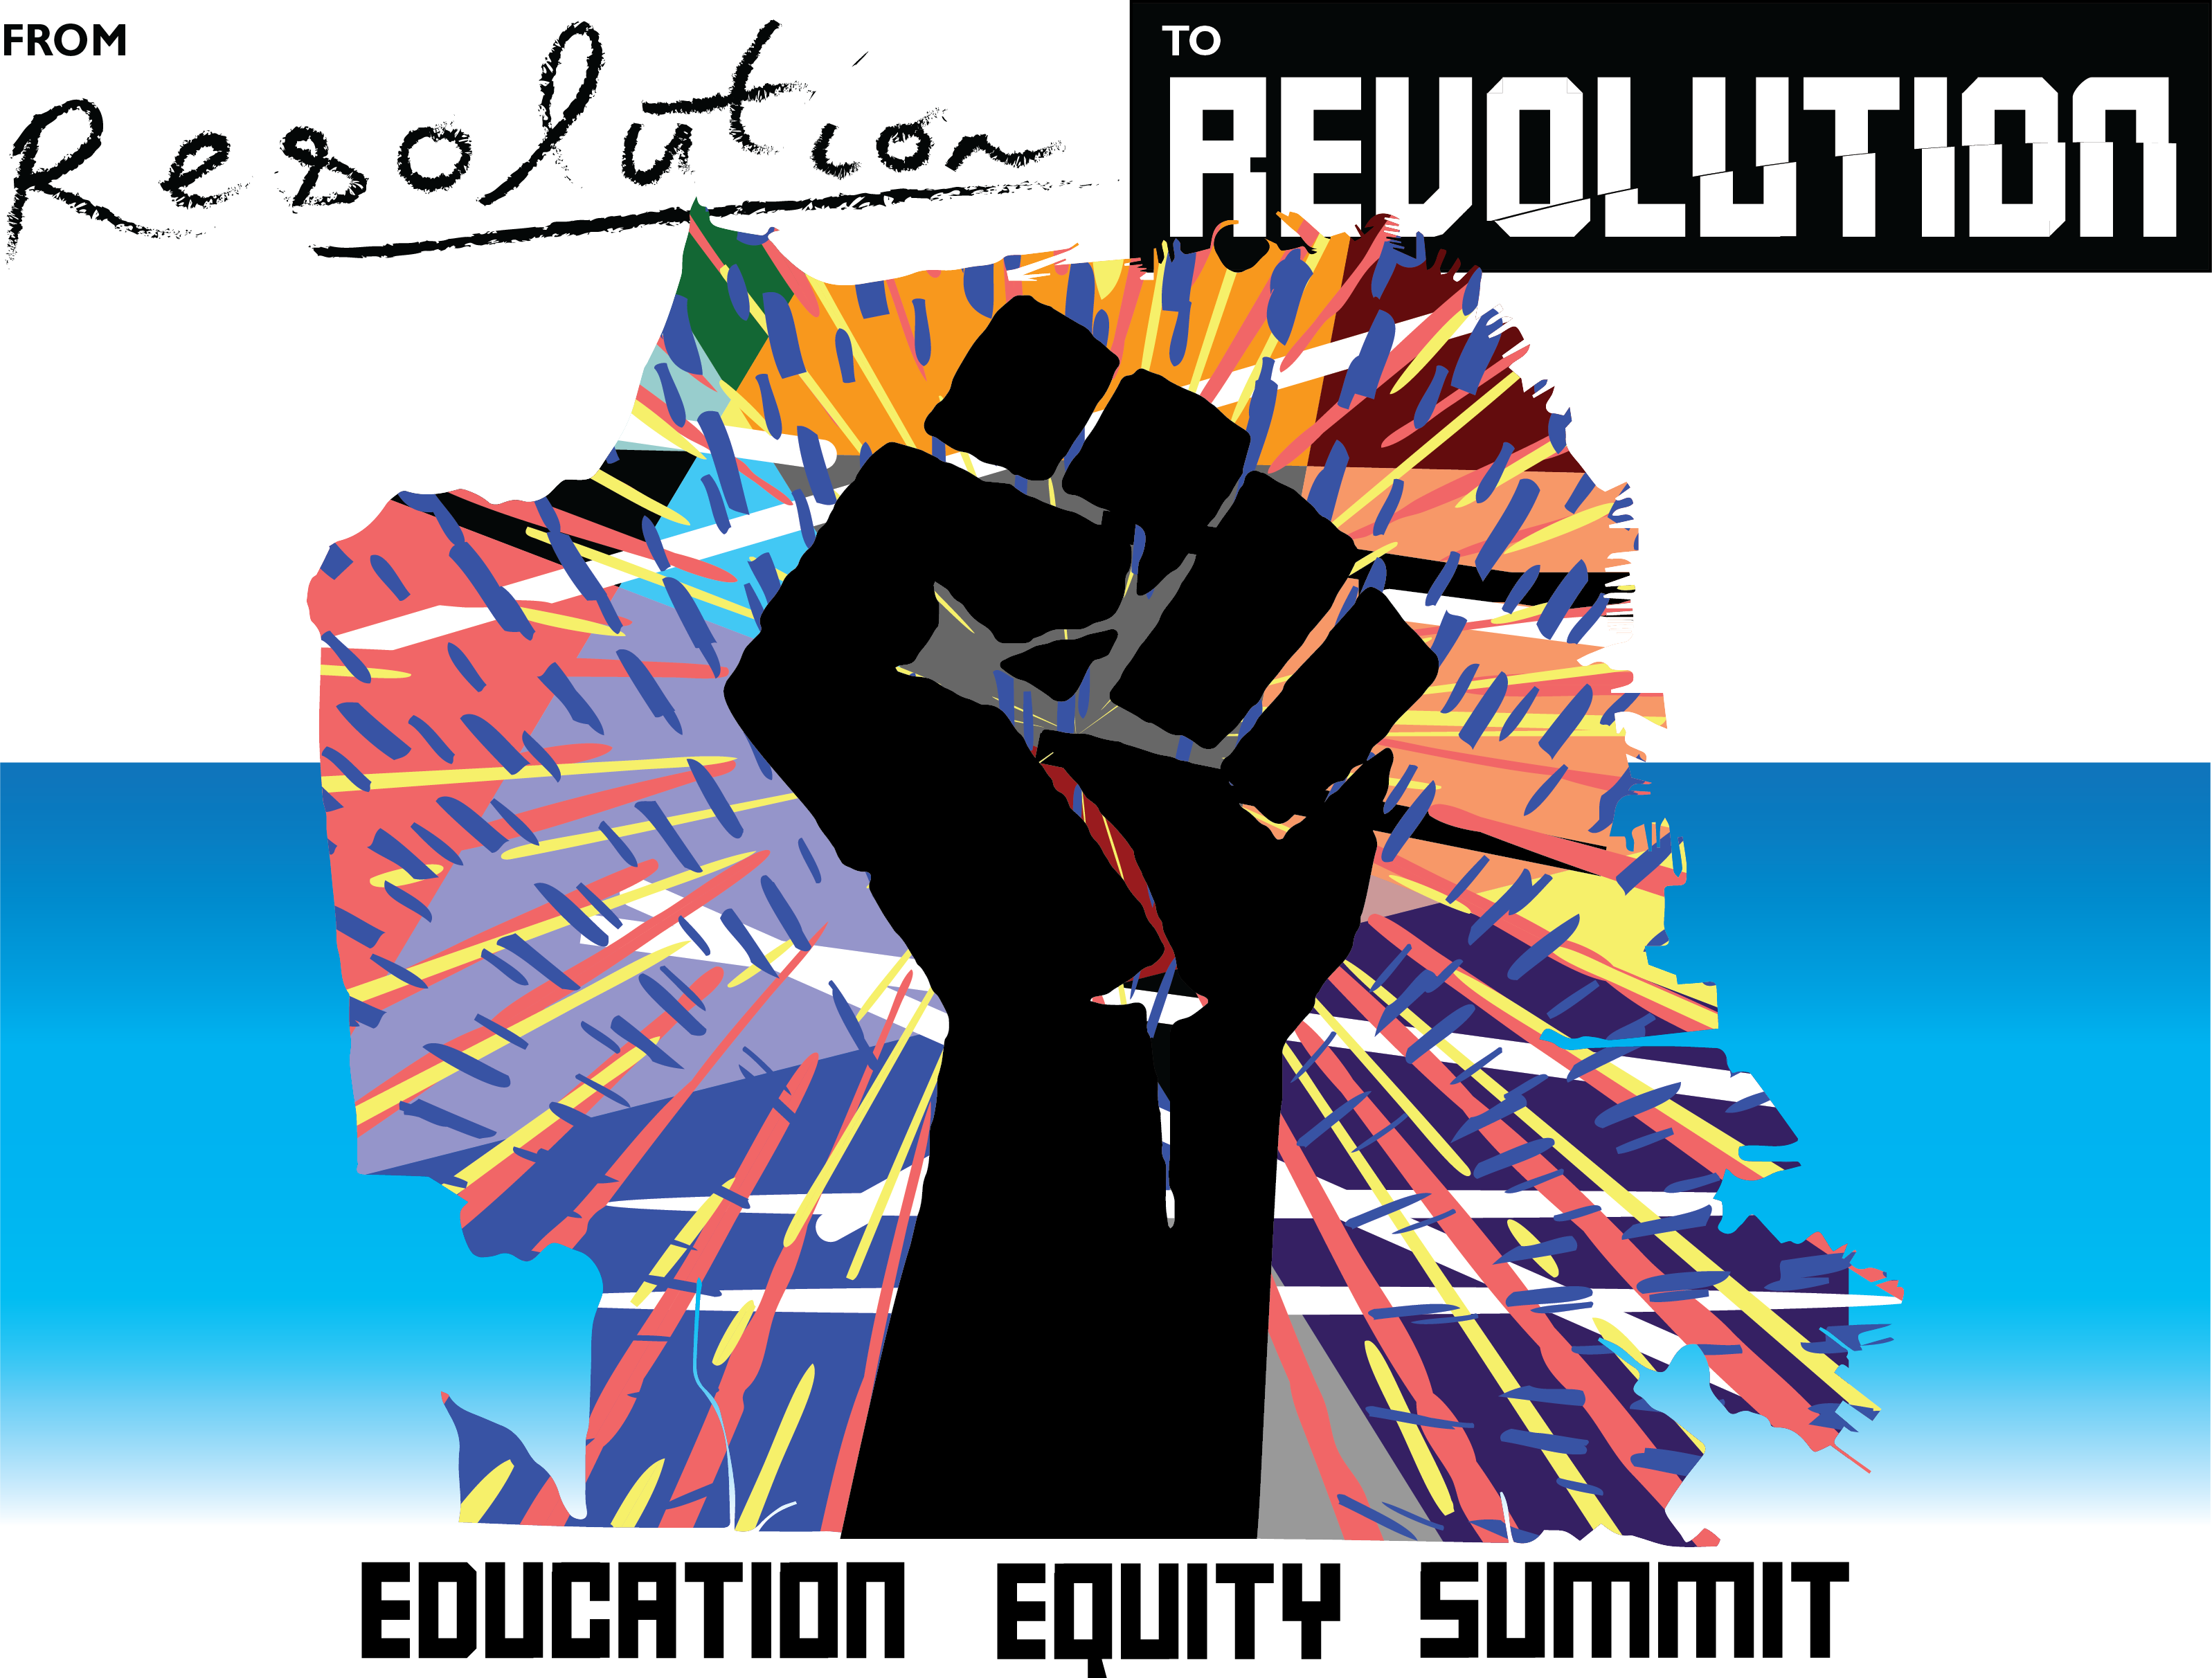 Poster for the Event, From Resolution to Revolution: An Education Equity Summit